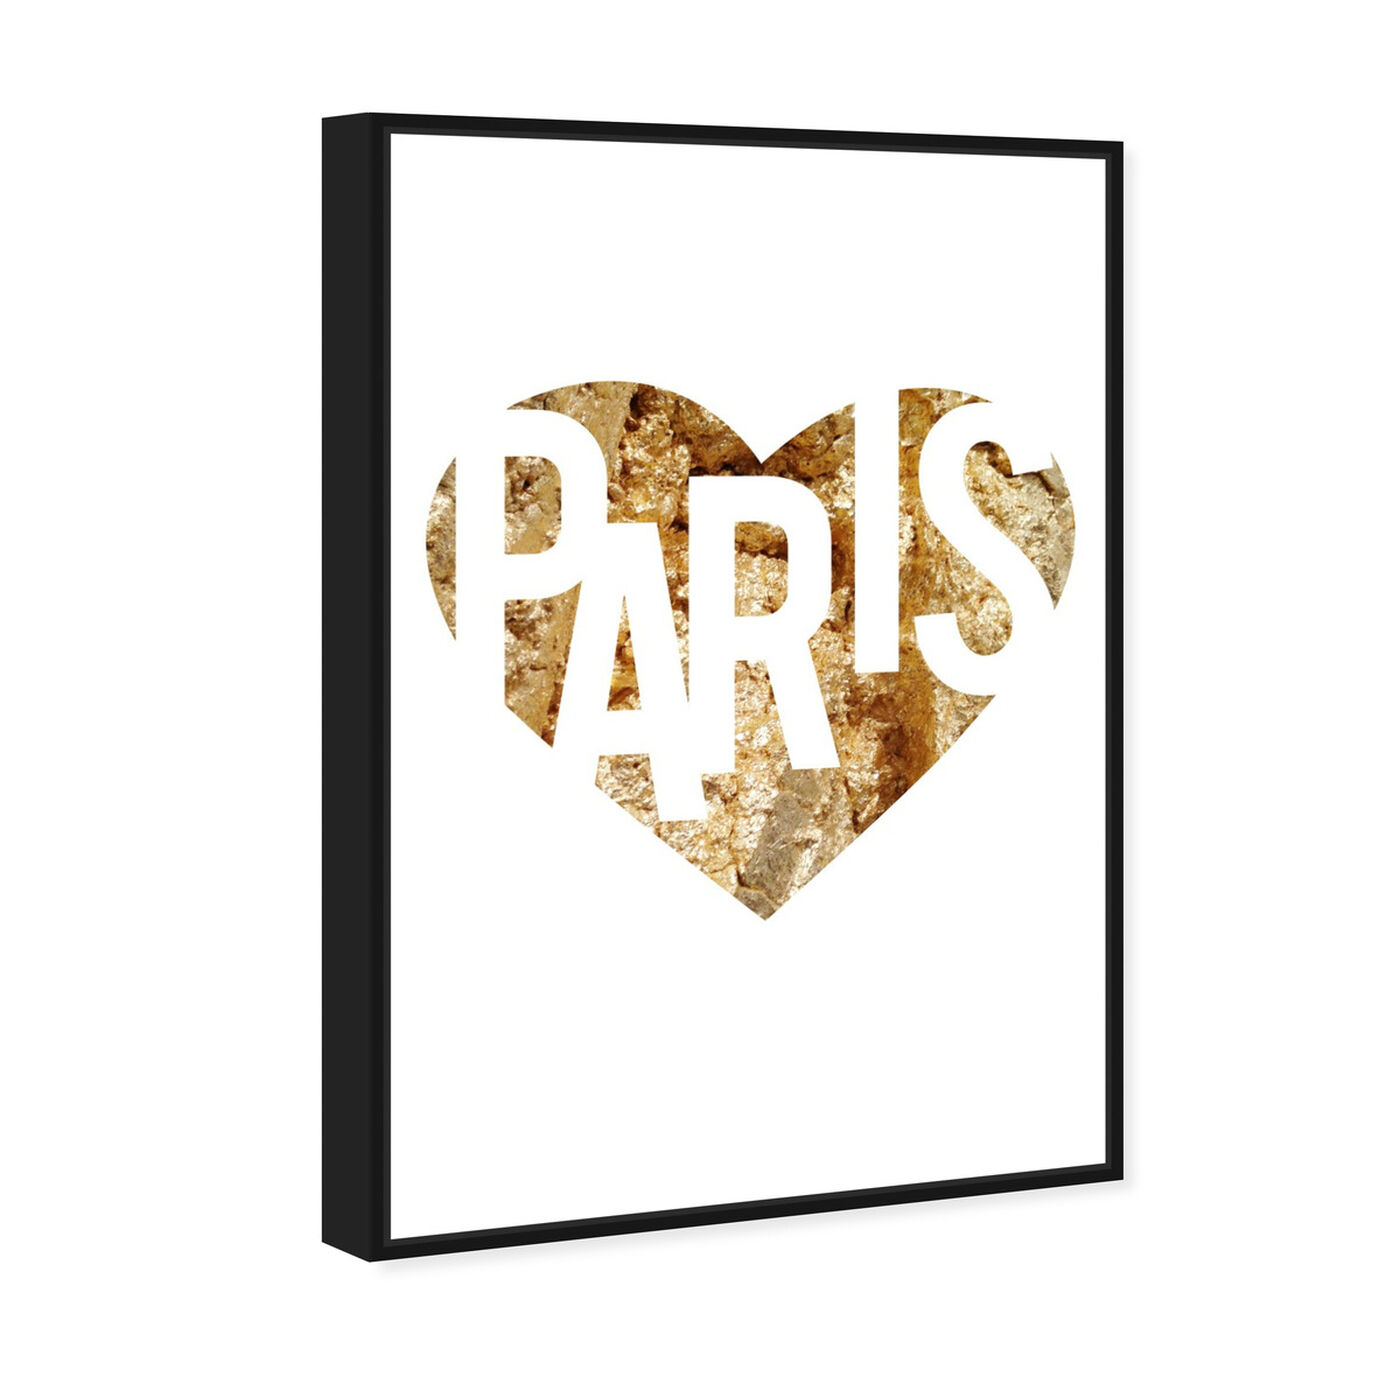 Angled view of I Love Paris Gold featuring fashion and glam and hearts art.